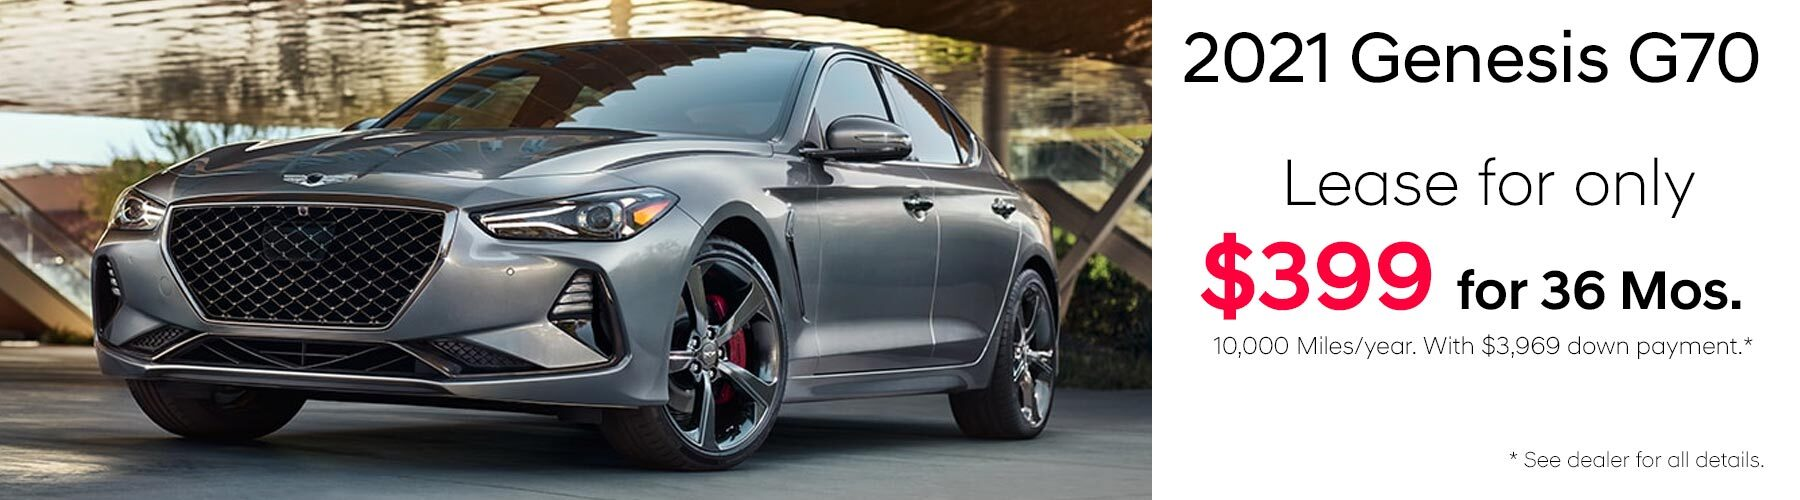 G70 Lease